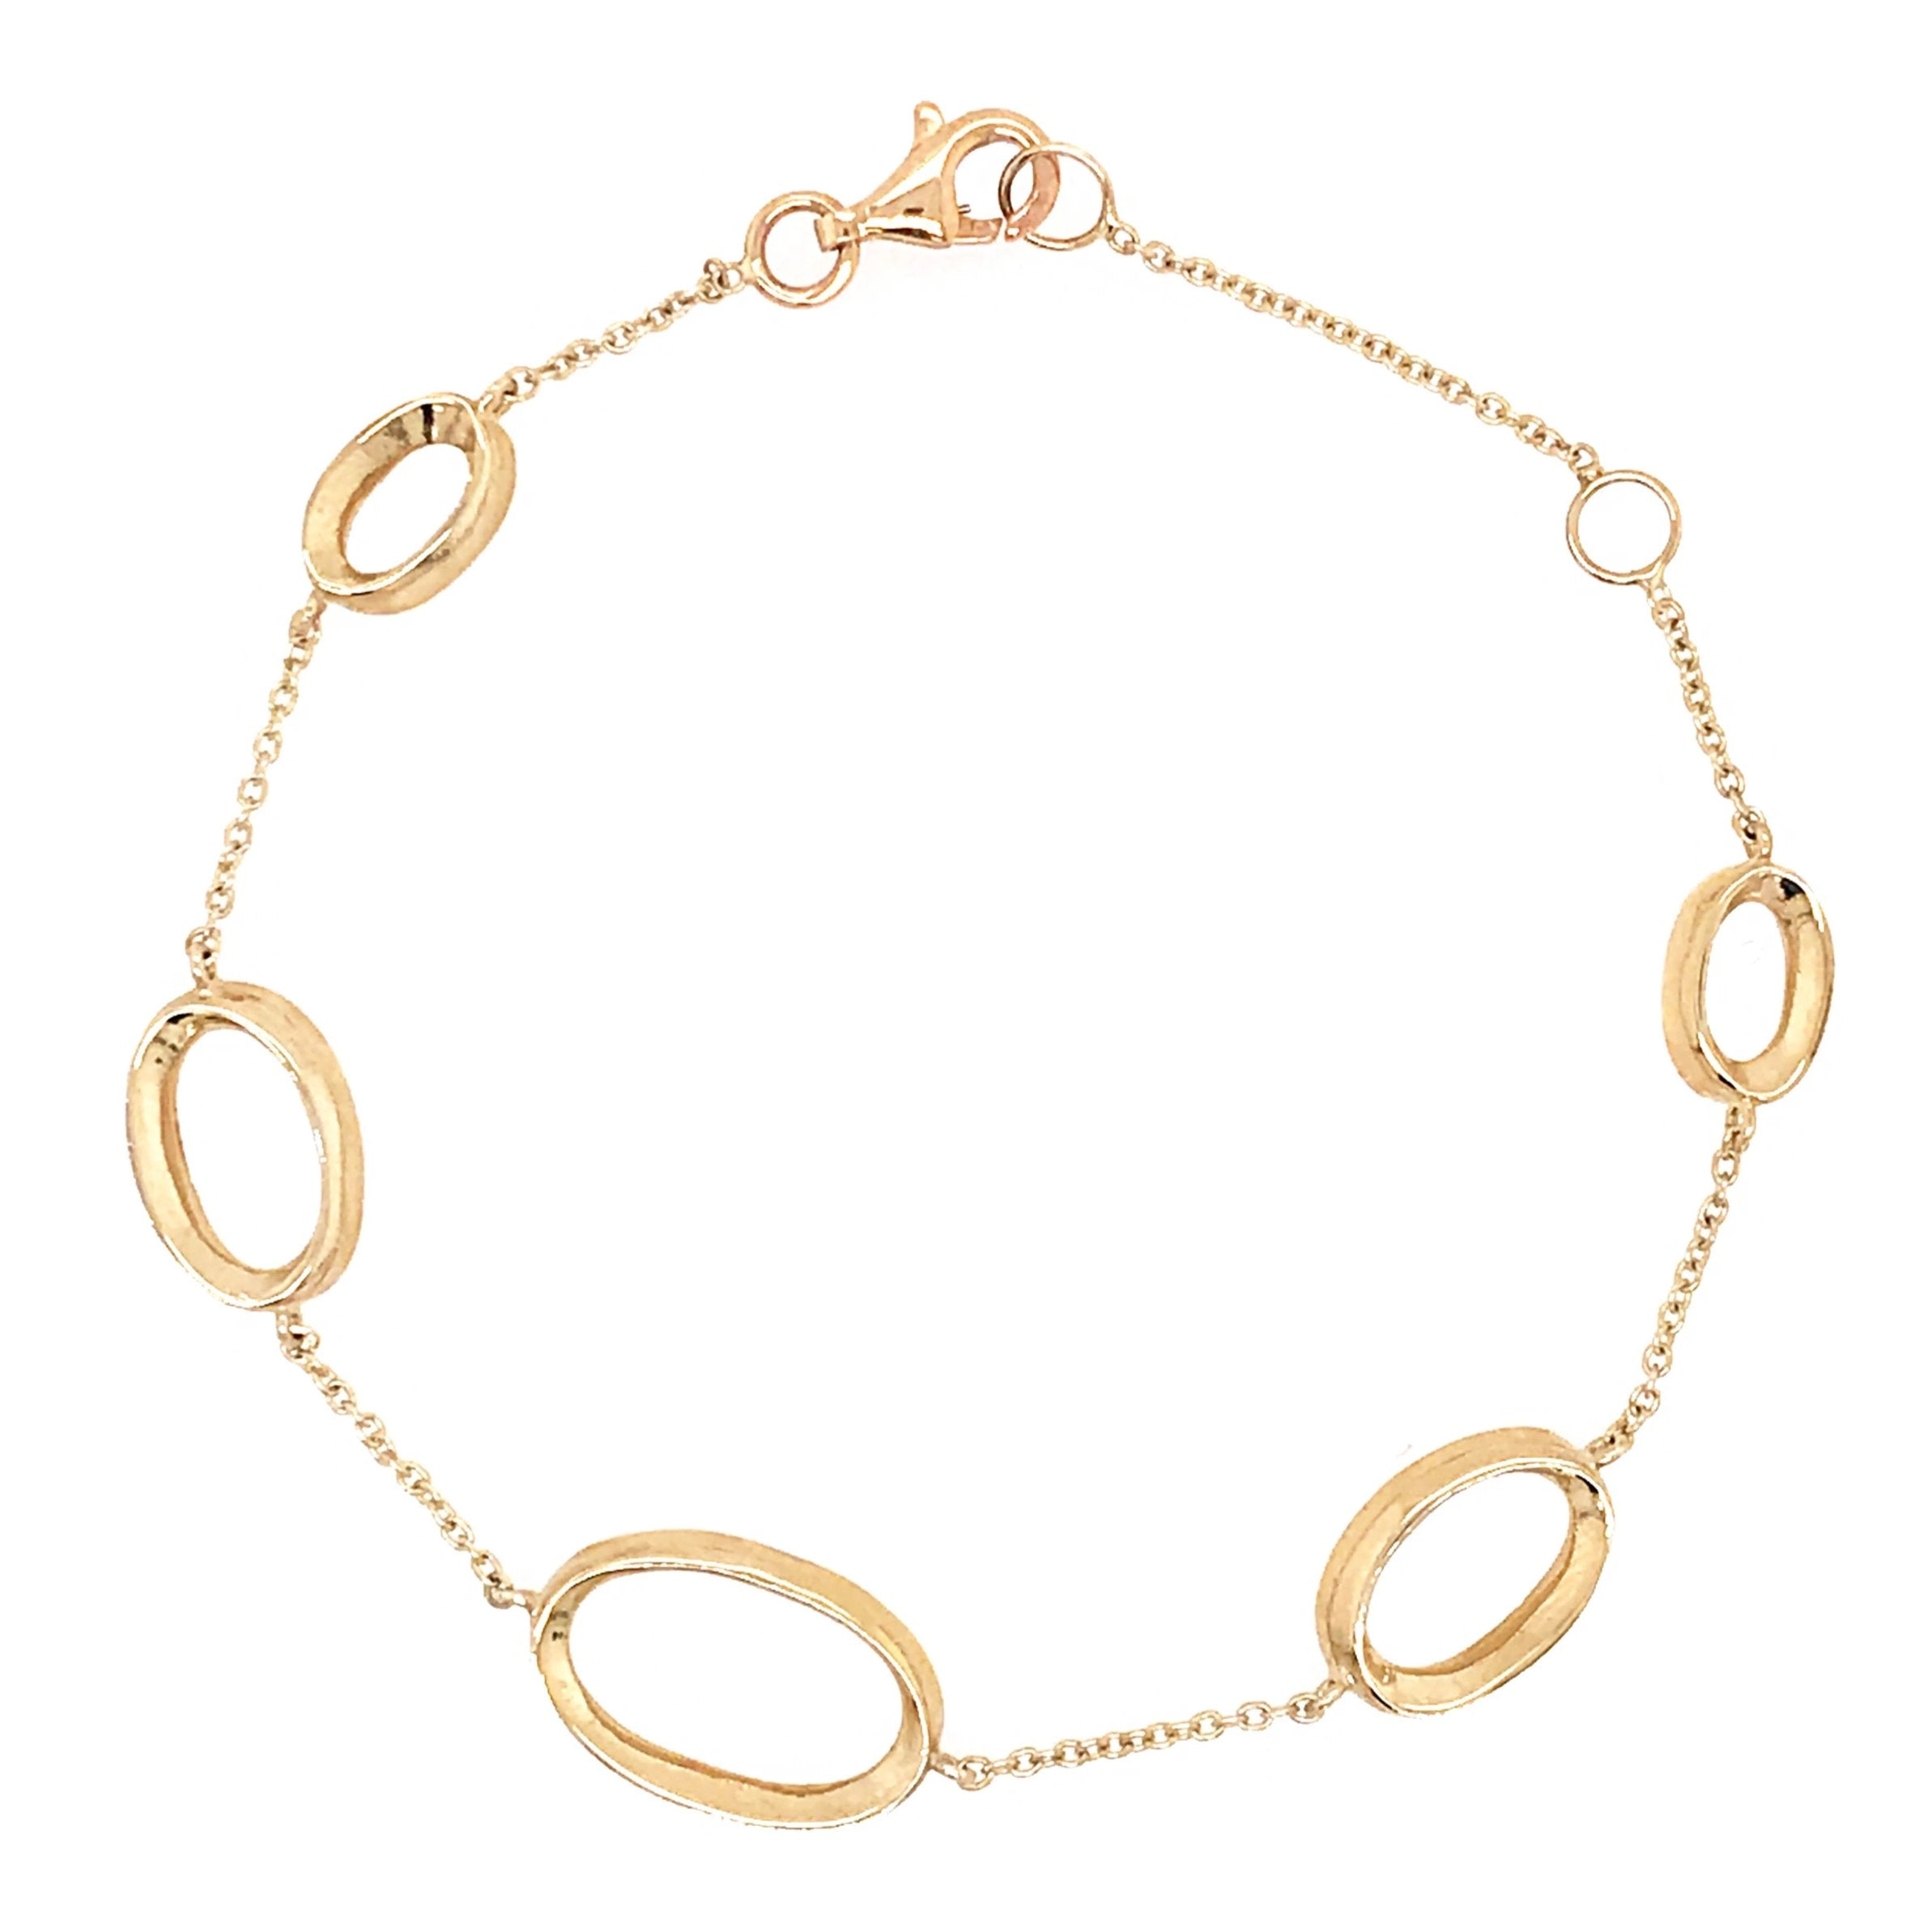 9ct Yellow Gold Oval Link Chain Bracelet